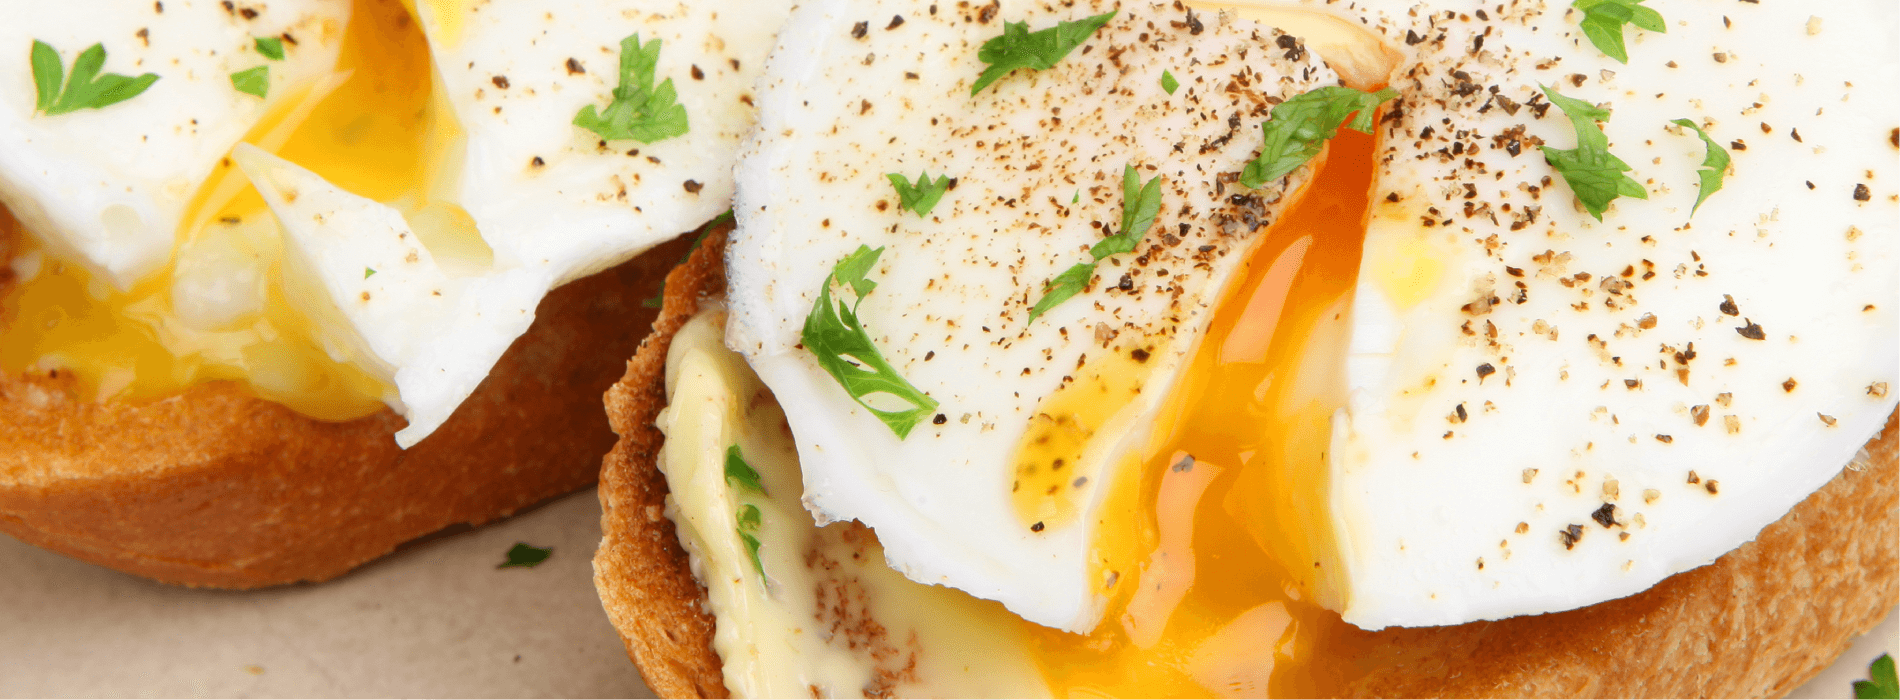 How to poach an egg like a pro